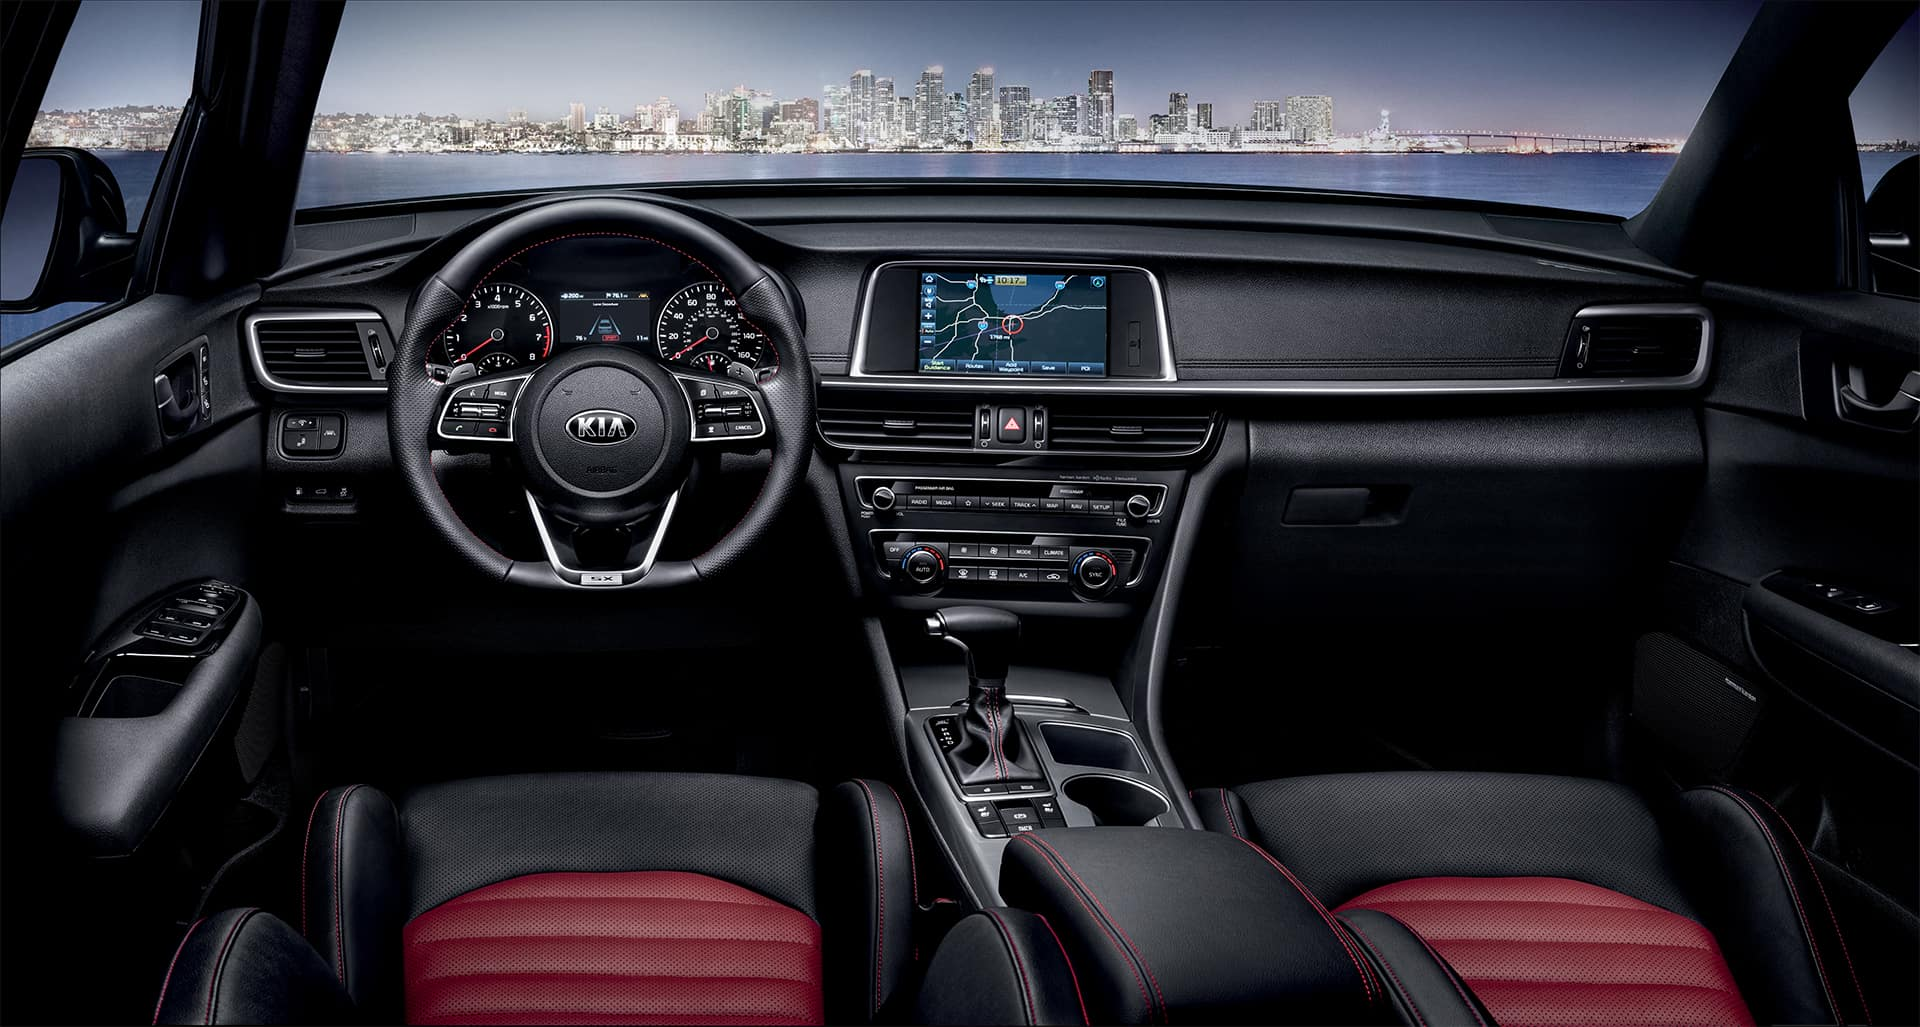 Terrific New Car Feature 2019 Kia Optima Racine Wisconsin Caraccident5 Cool Chair Designs And Ideas Caraccident5Info